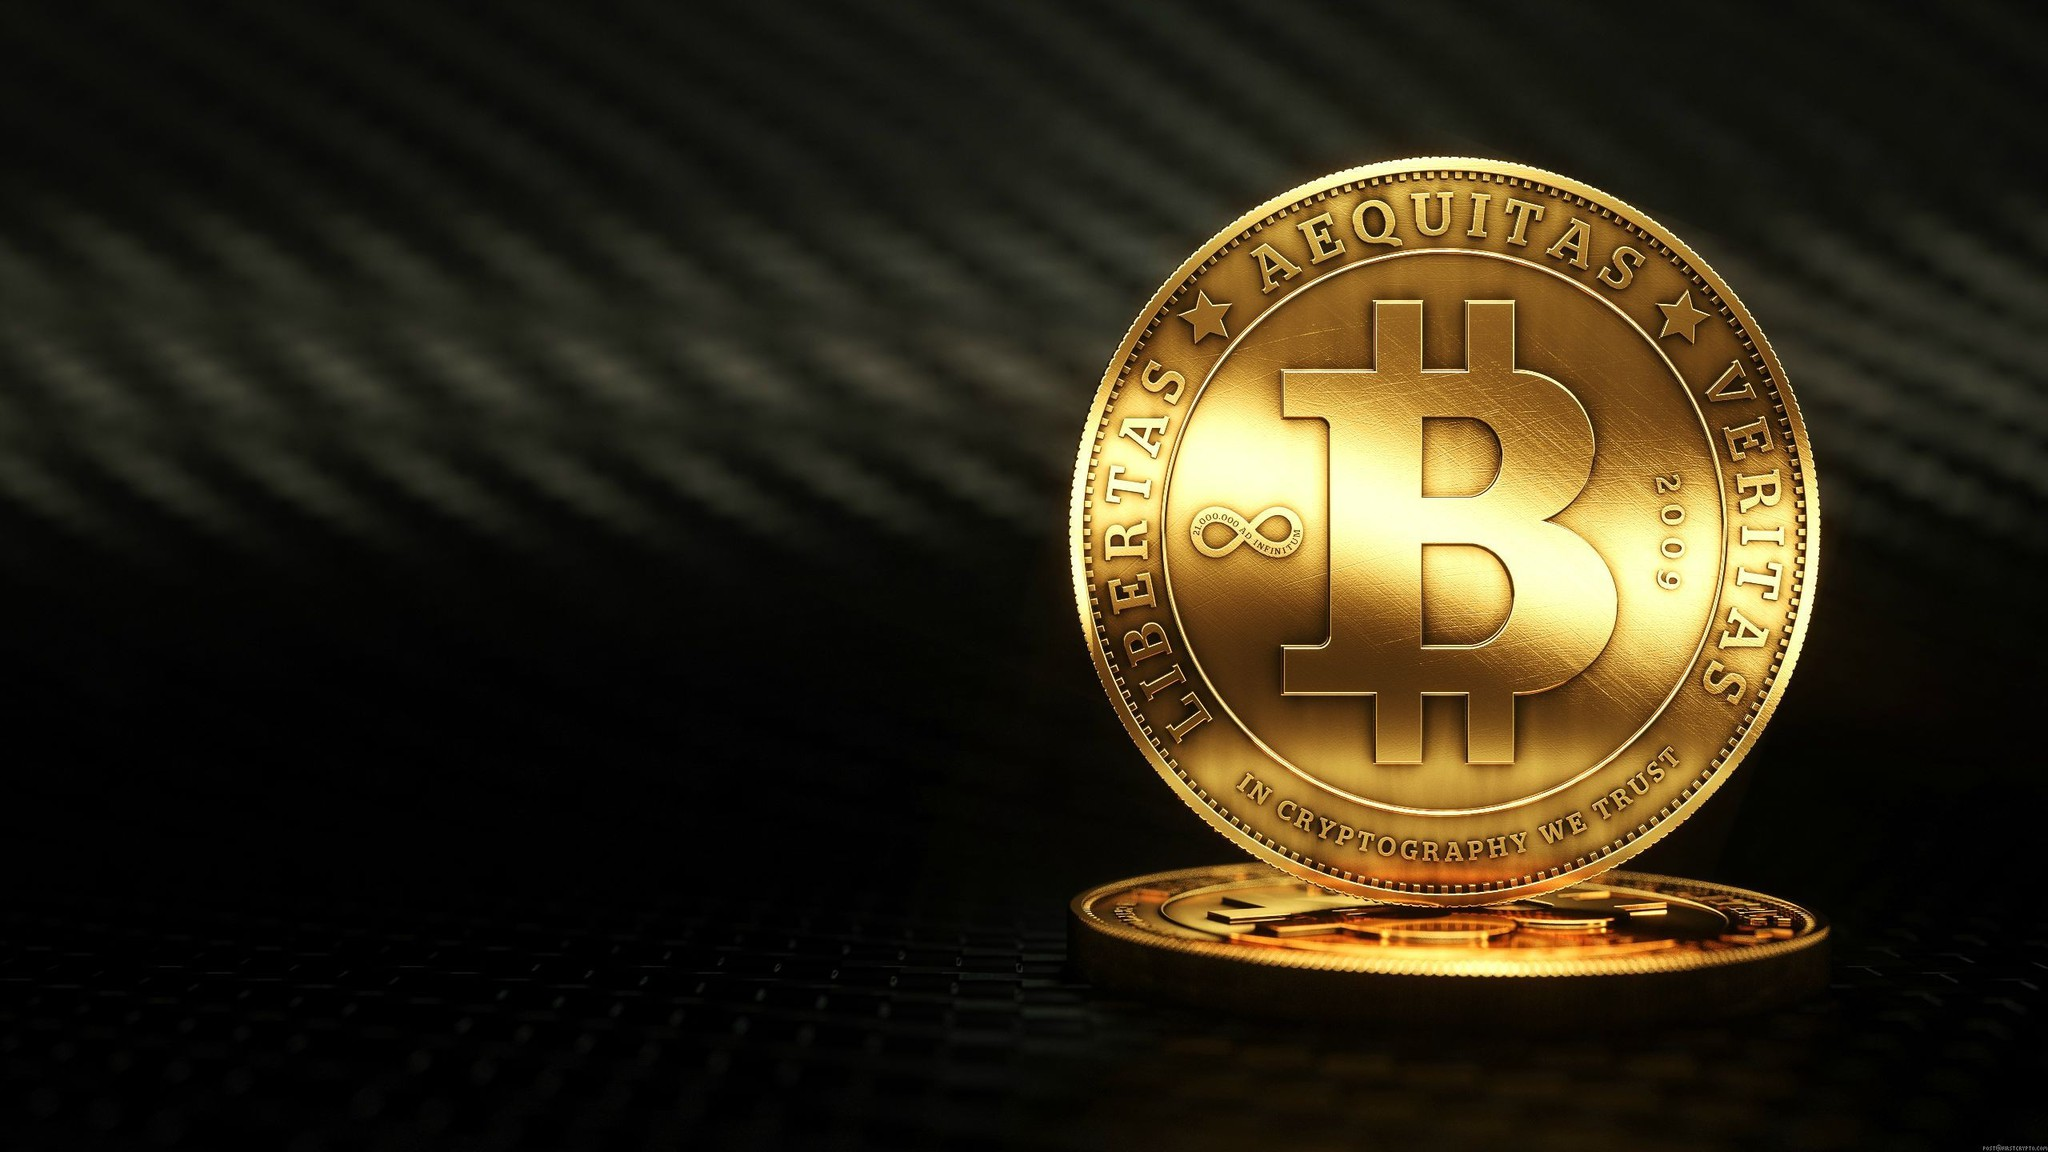 Cryptography Bitcoin Wallpaper Allwallpaper 4276 Pc En Resolutions 2048